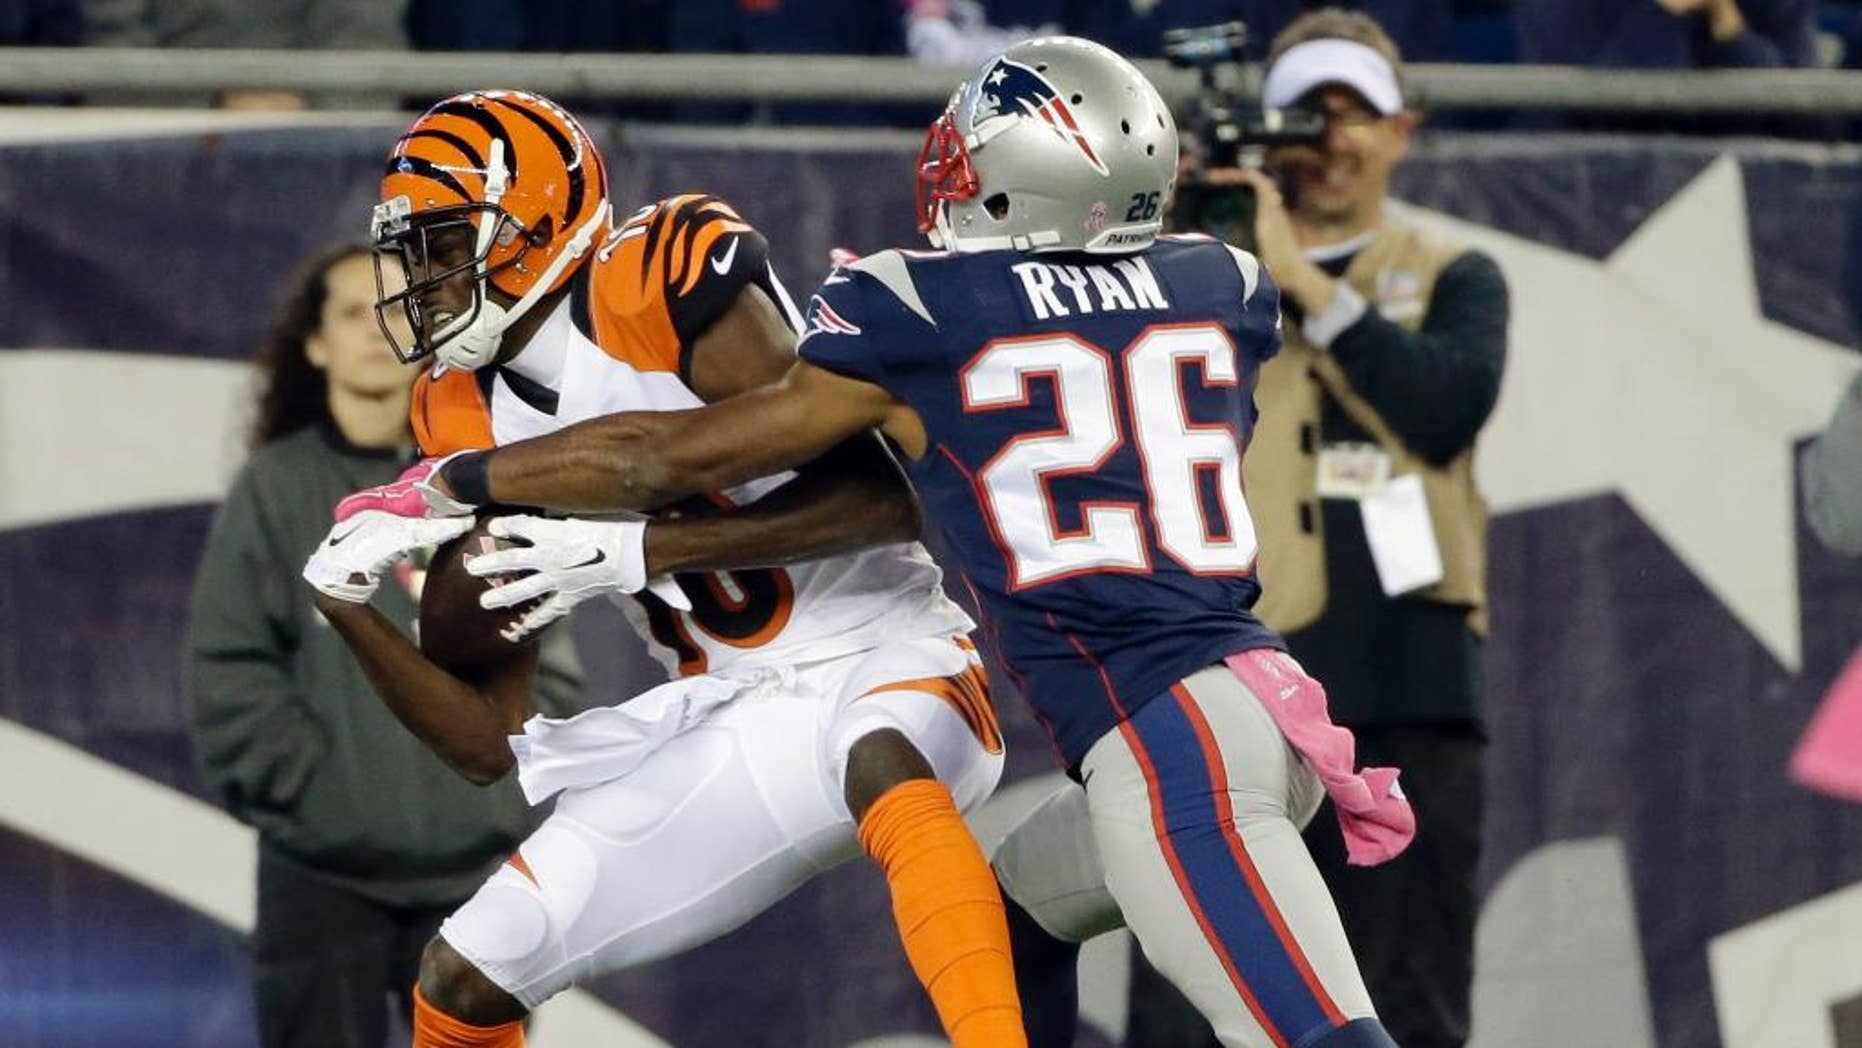 Cincinnati Bengals wide receiver A.J. Green (18) catches a touchdown pass in front of New England Patriots cornerback Logan Ryan (26) in the second half of an NFL football game Sunday, Oct. 5, 2014, in Foxborough, Mass. (AP Photo/Steven Senne)